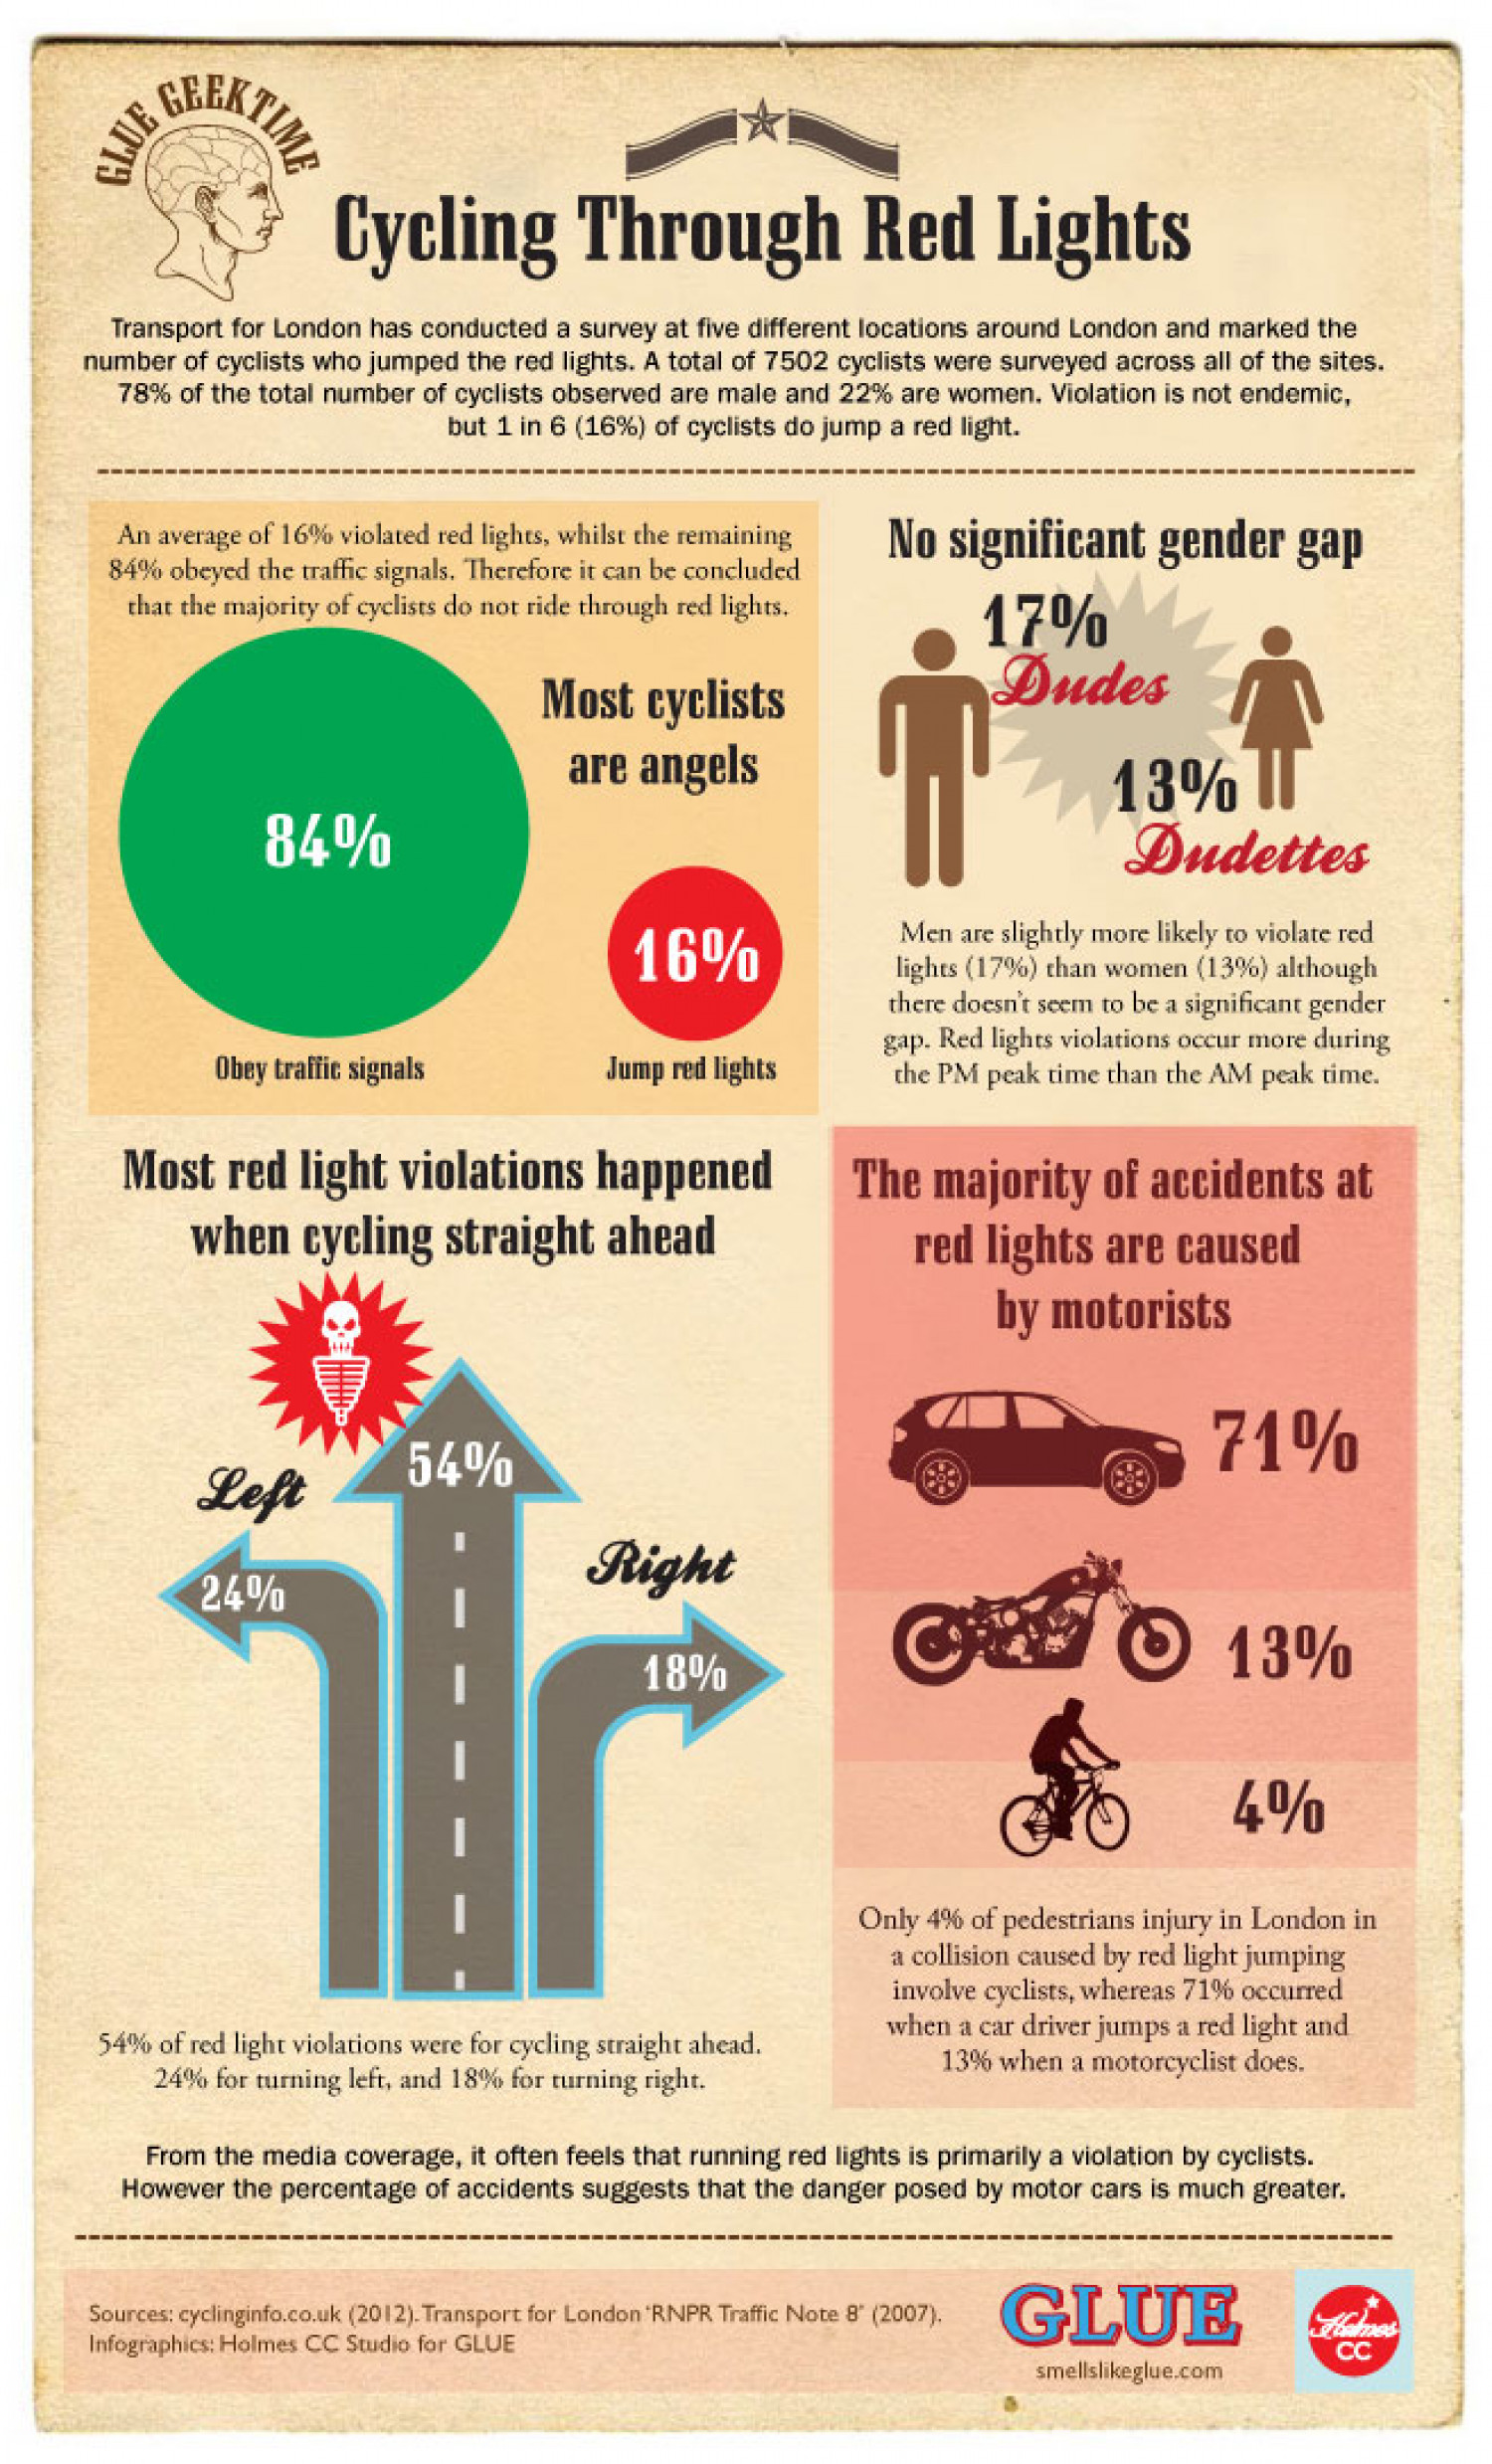 Cycling Through Red Lights Infographic